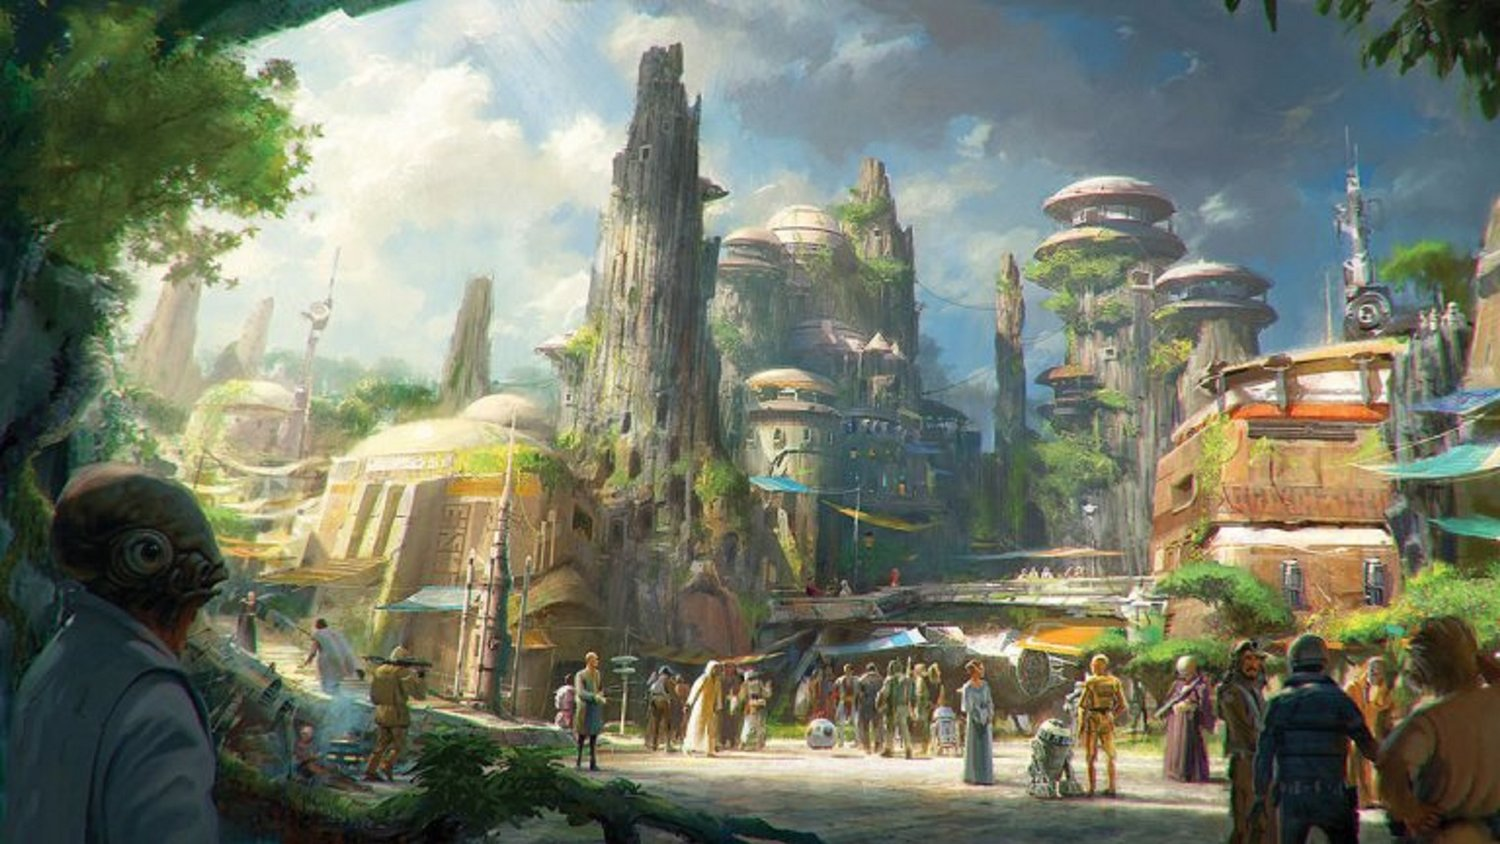 STAR WARS Land to Officially Open in Orlando in 2019